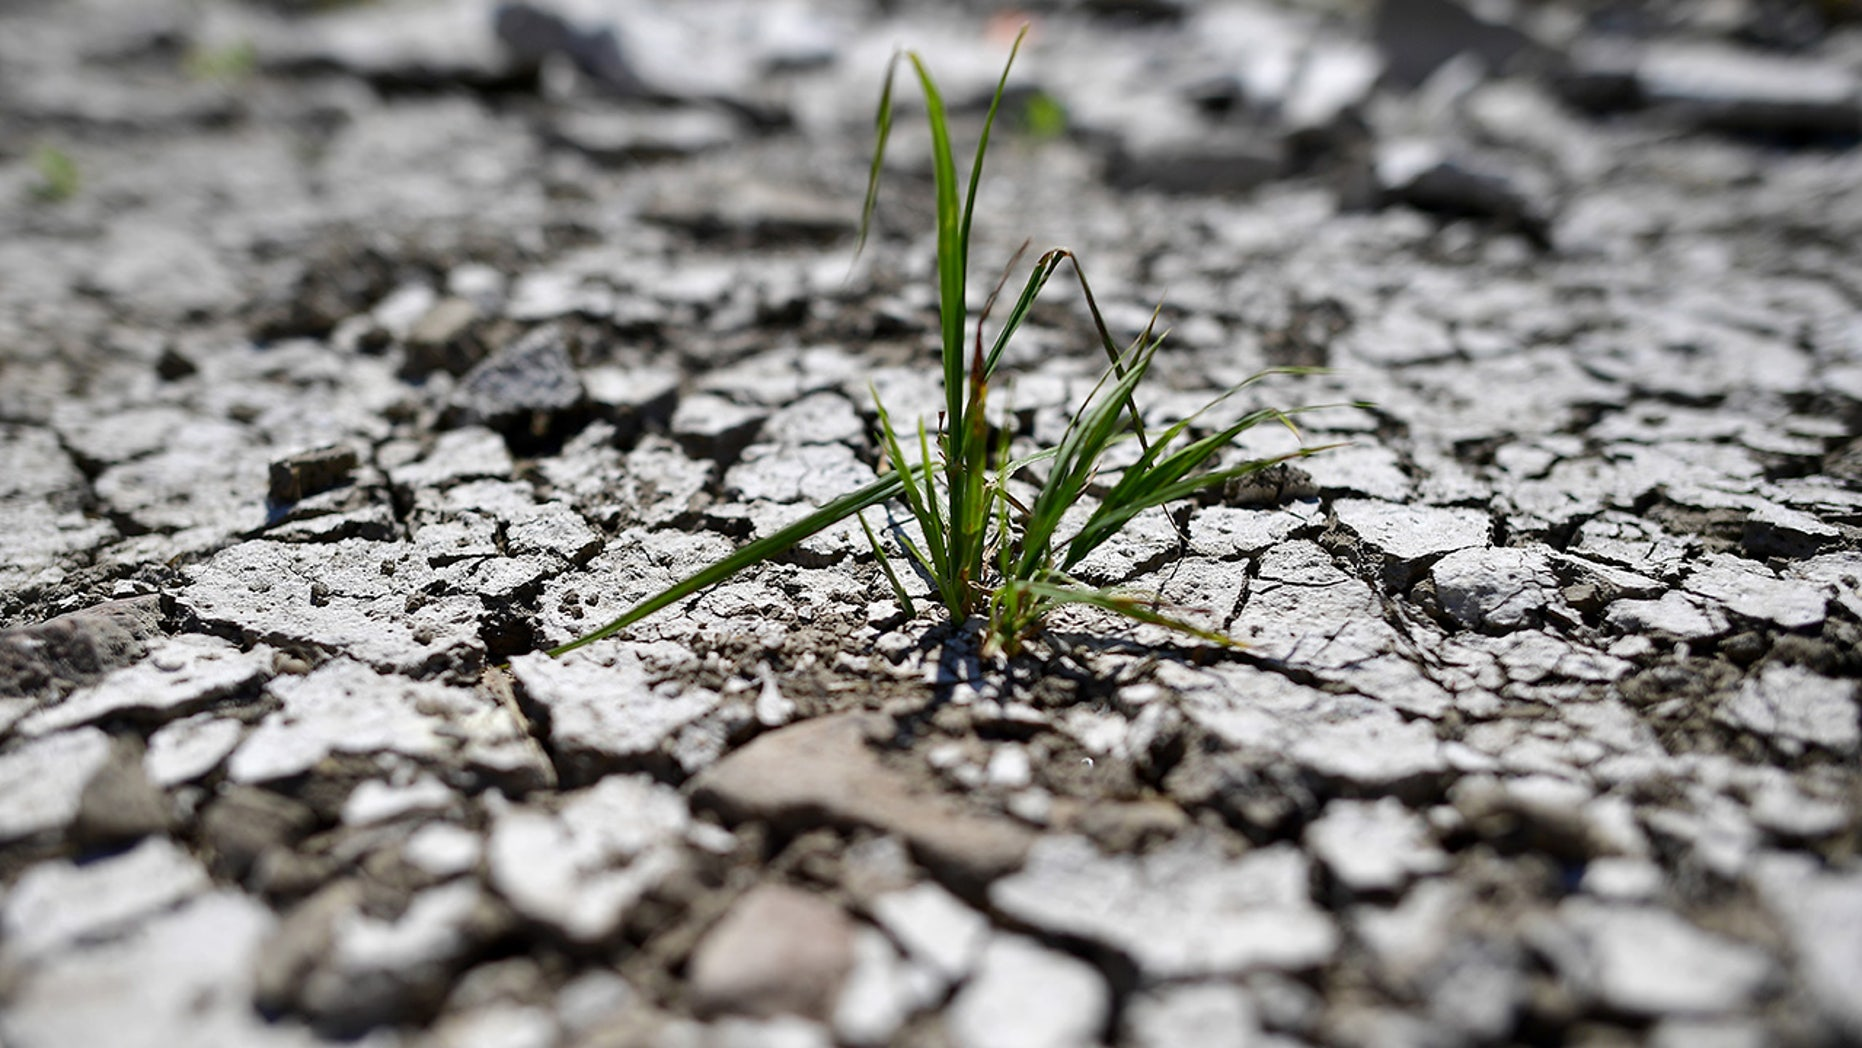 A plant is pictured in a dried out riverbed in Magdeburg, Germany. A heatwave continues to roil the country and wreak havoc on farmland.